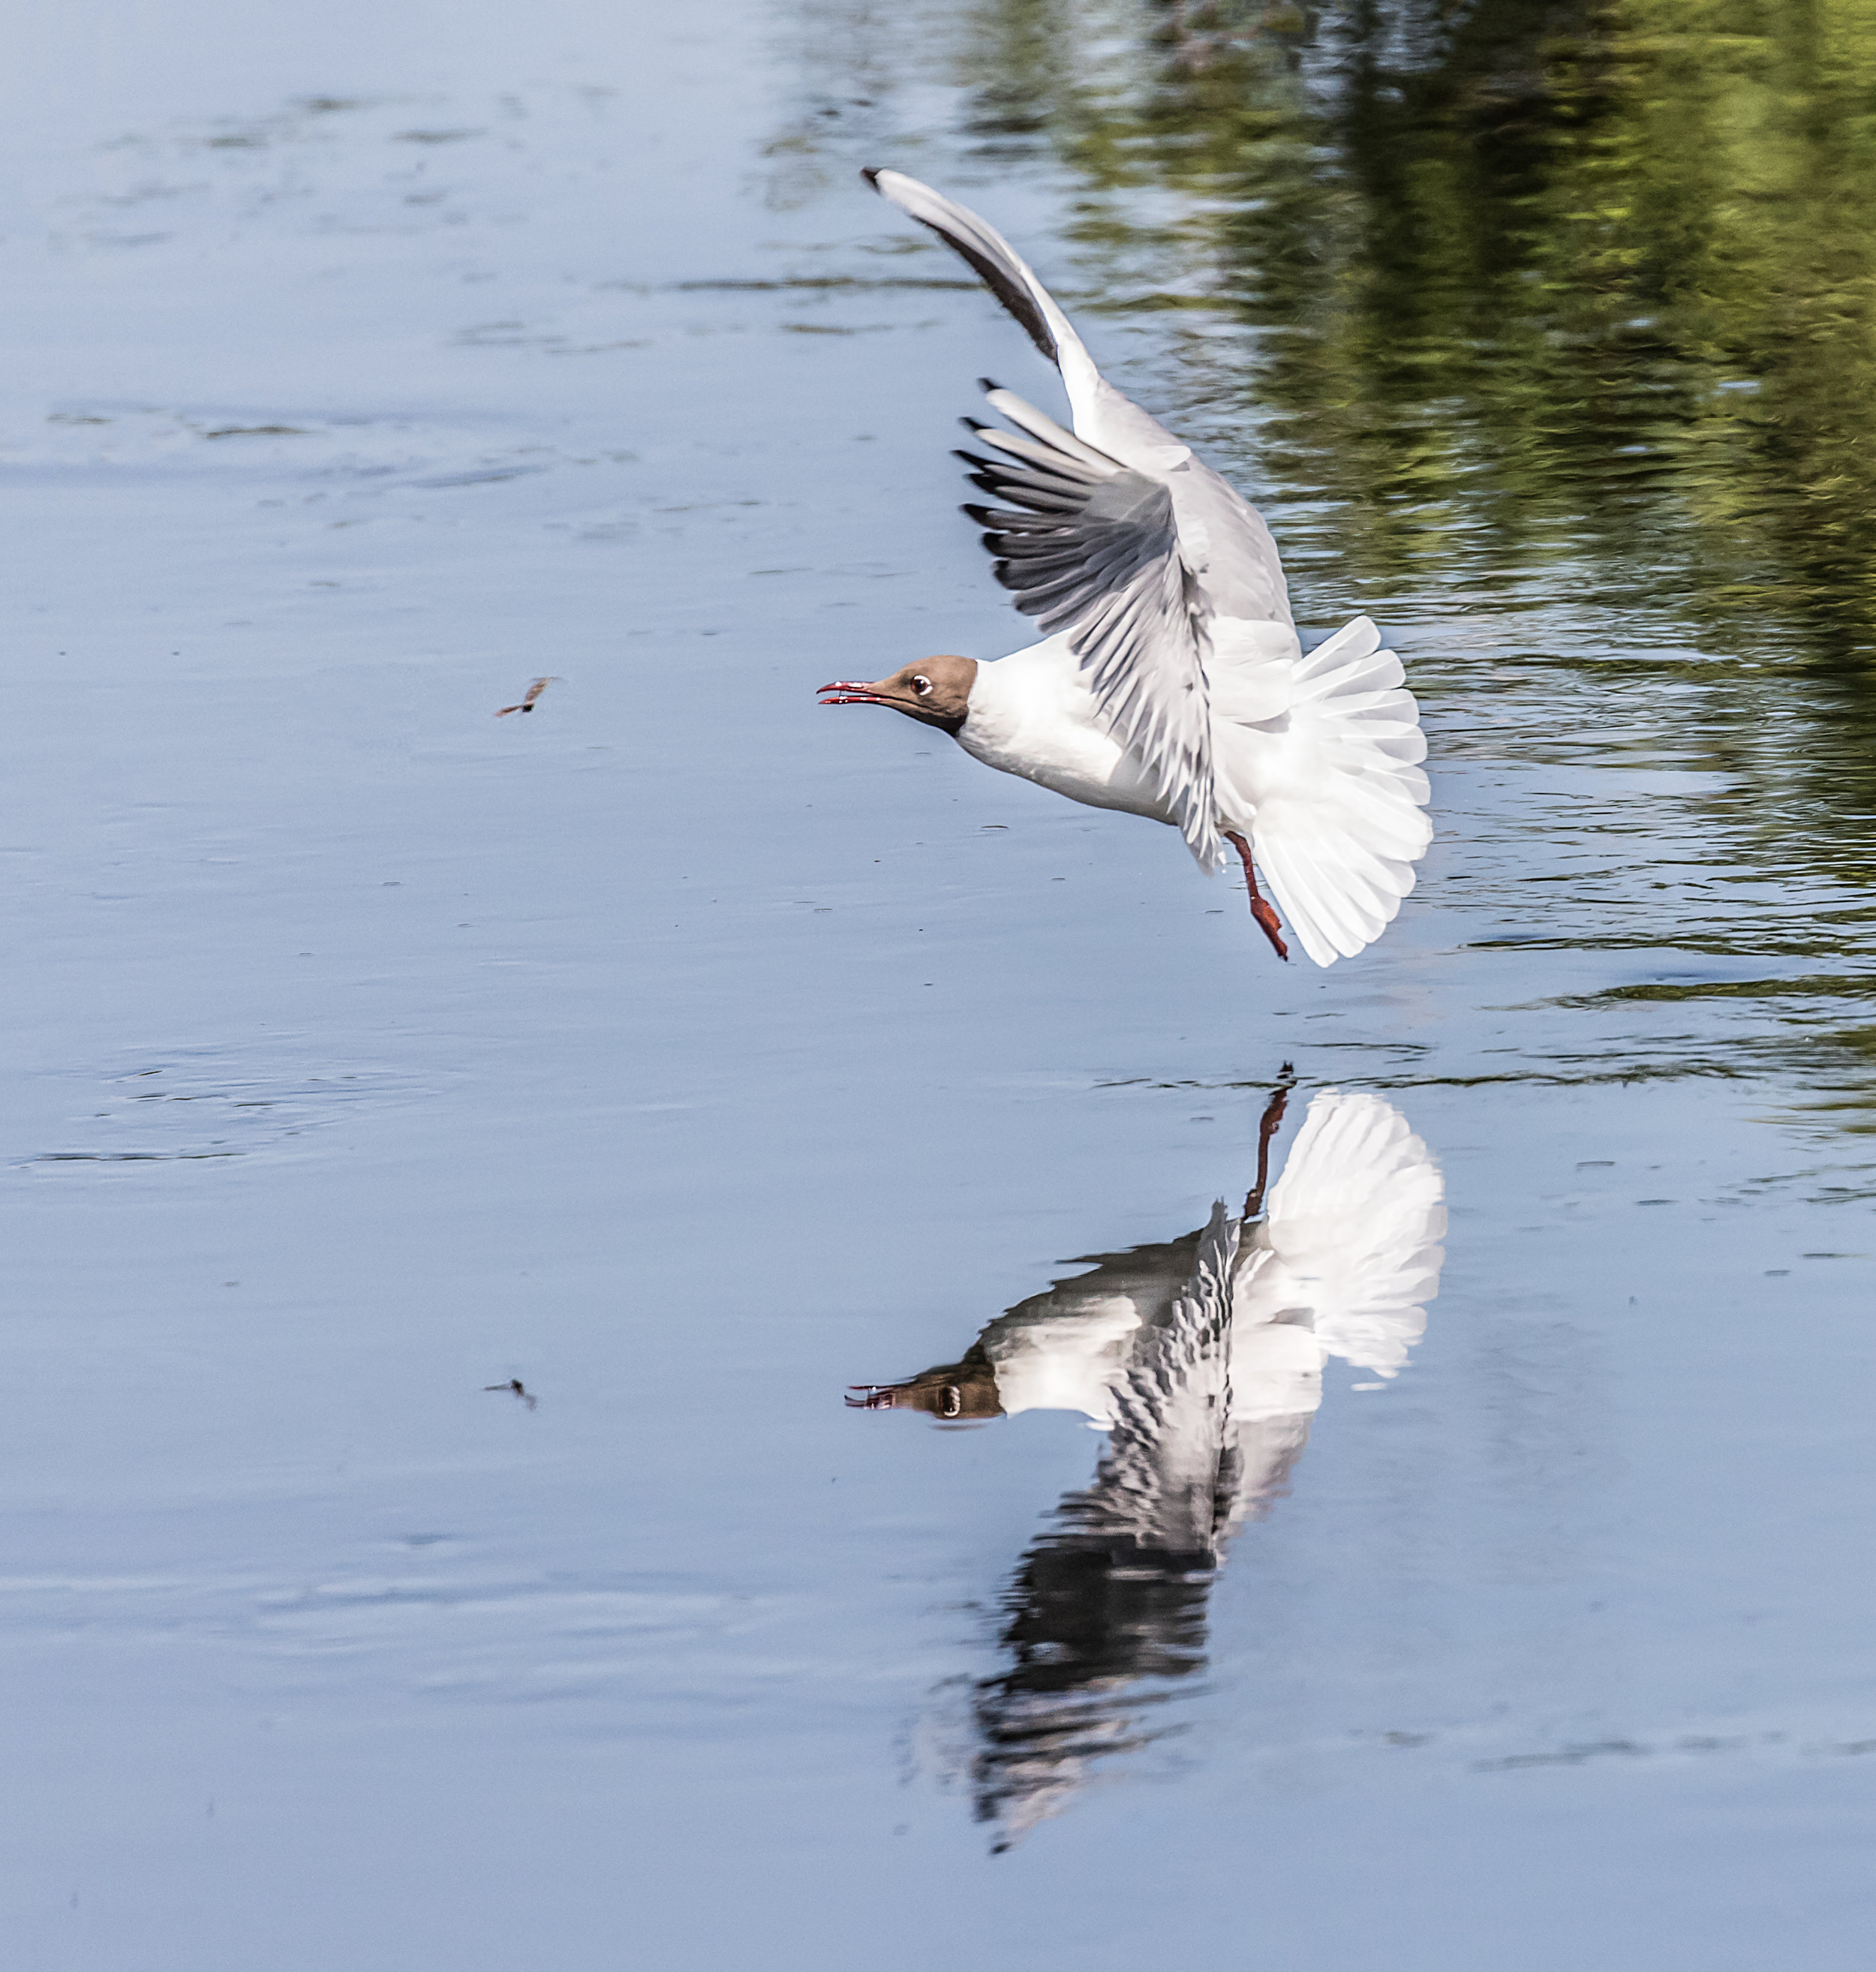 Black Headed Gull chasing an insect